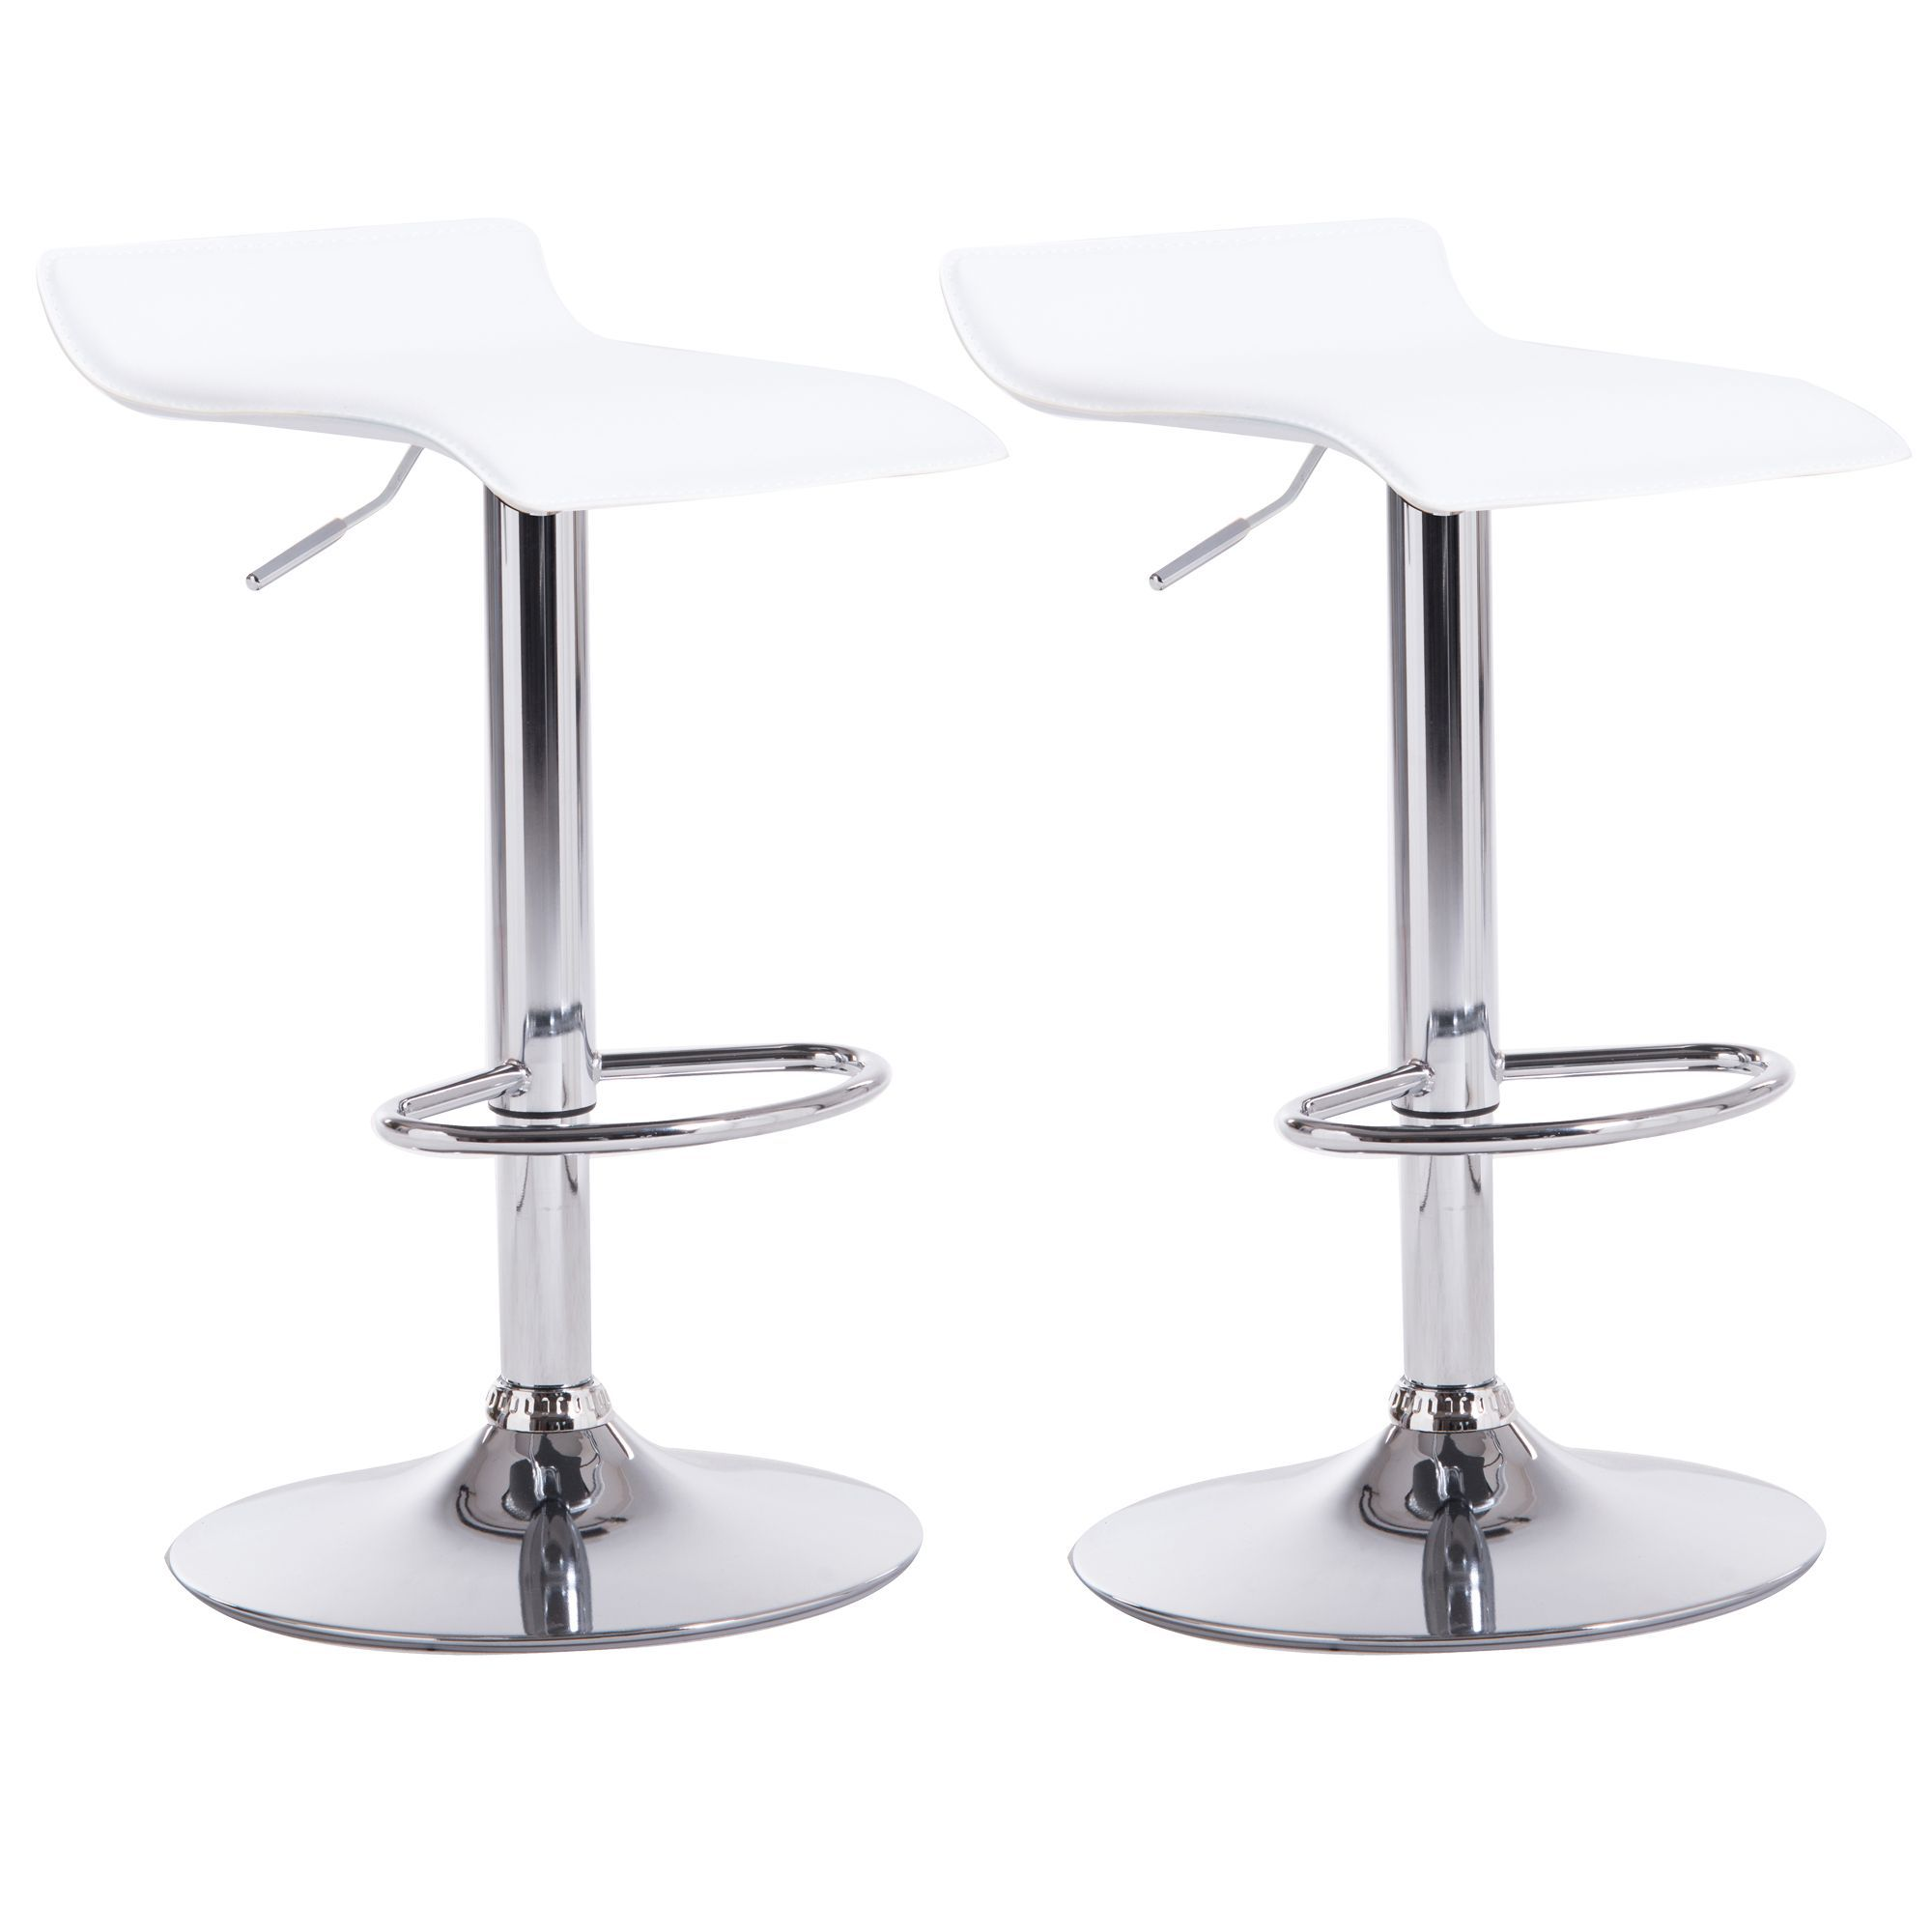 online store 2dcf6 d0ae3 Daphne White & Chrome effect Bar stool (H)850mm (W)450mm, Pack of 2    Departments   DIY at B&Q